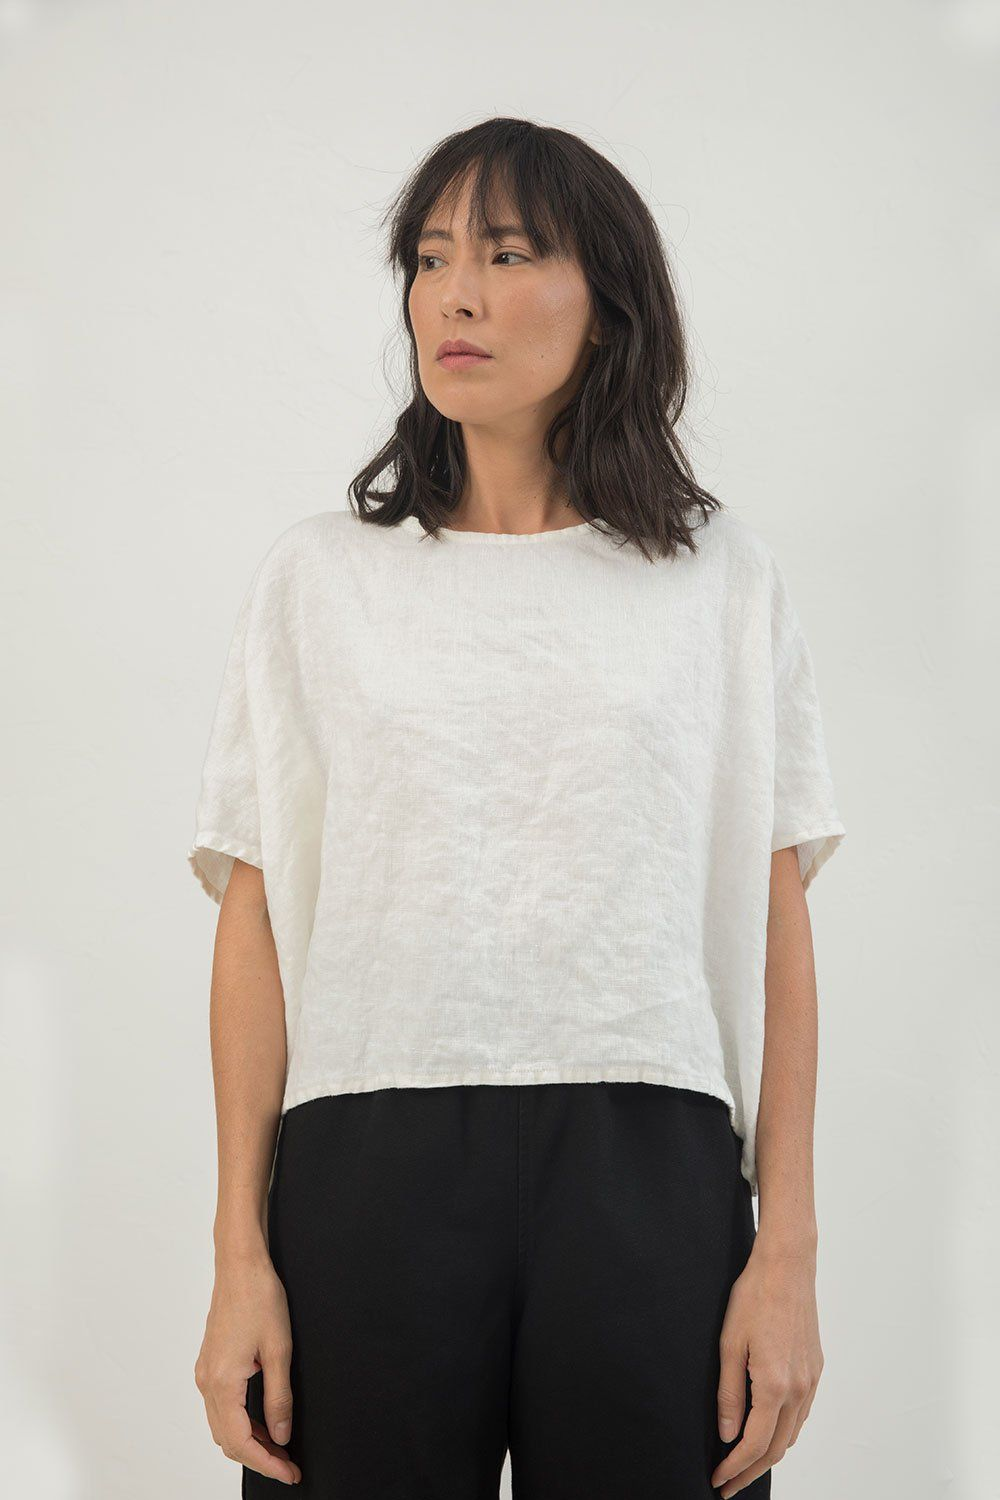 82479a4a Linn Tee in Midweight Linen   Wear   Sewing shirts, How to wear, Tees